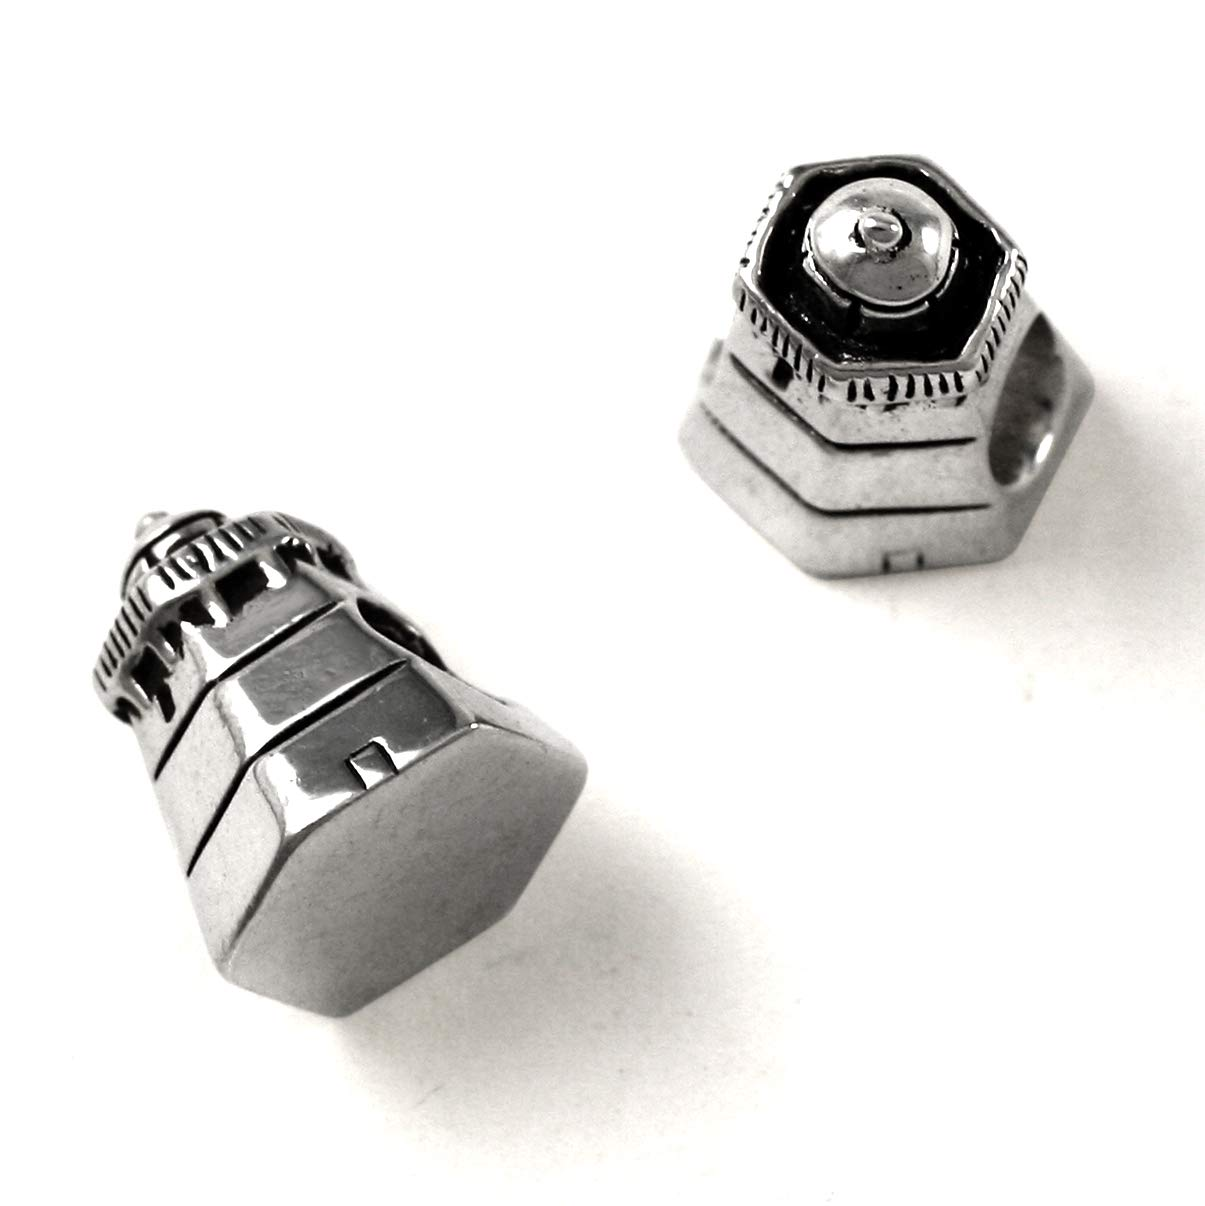 Hexagonal Lighthouse Charm Bead - Sterling 925 Silver Fi Special price for a Safety and trust limited time Solid